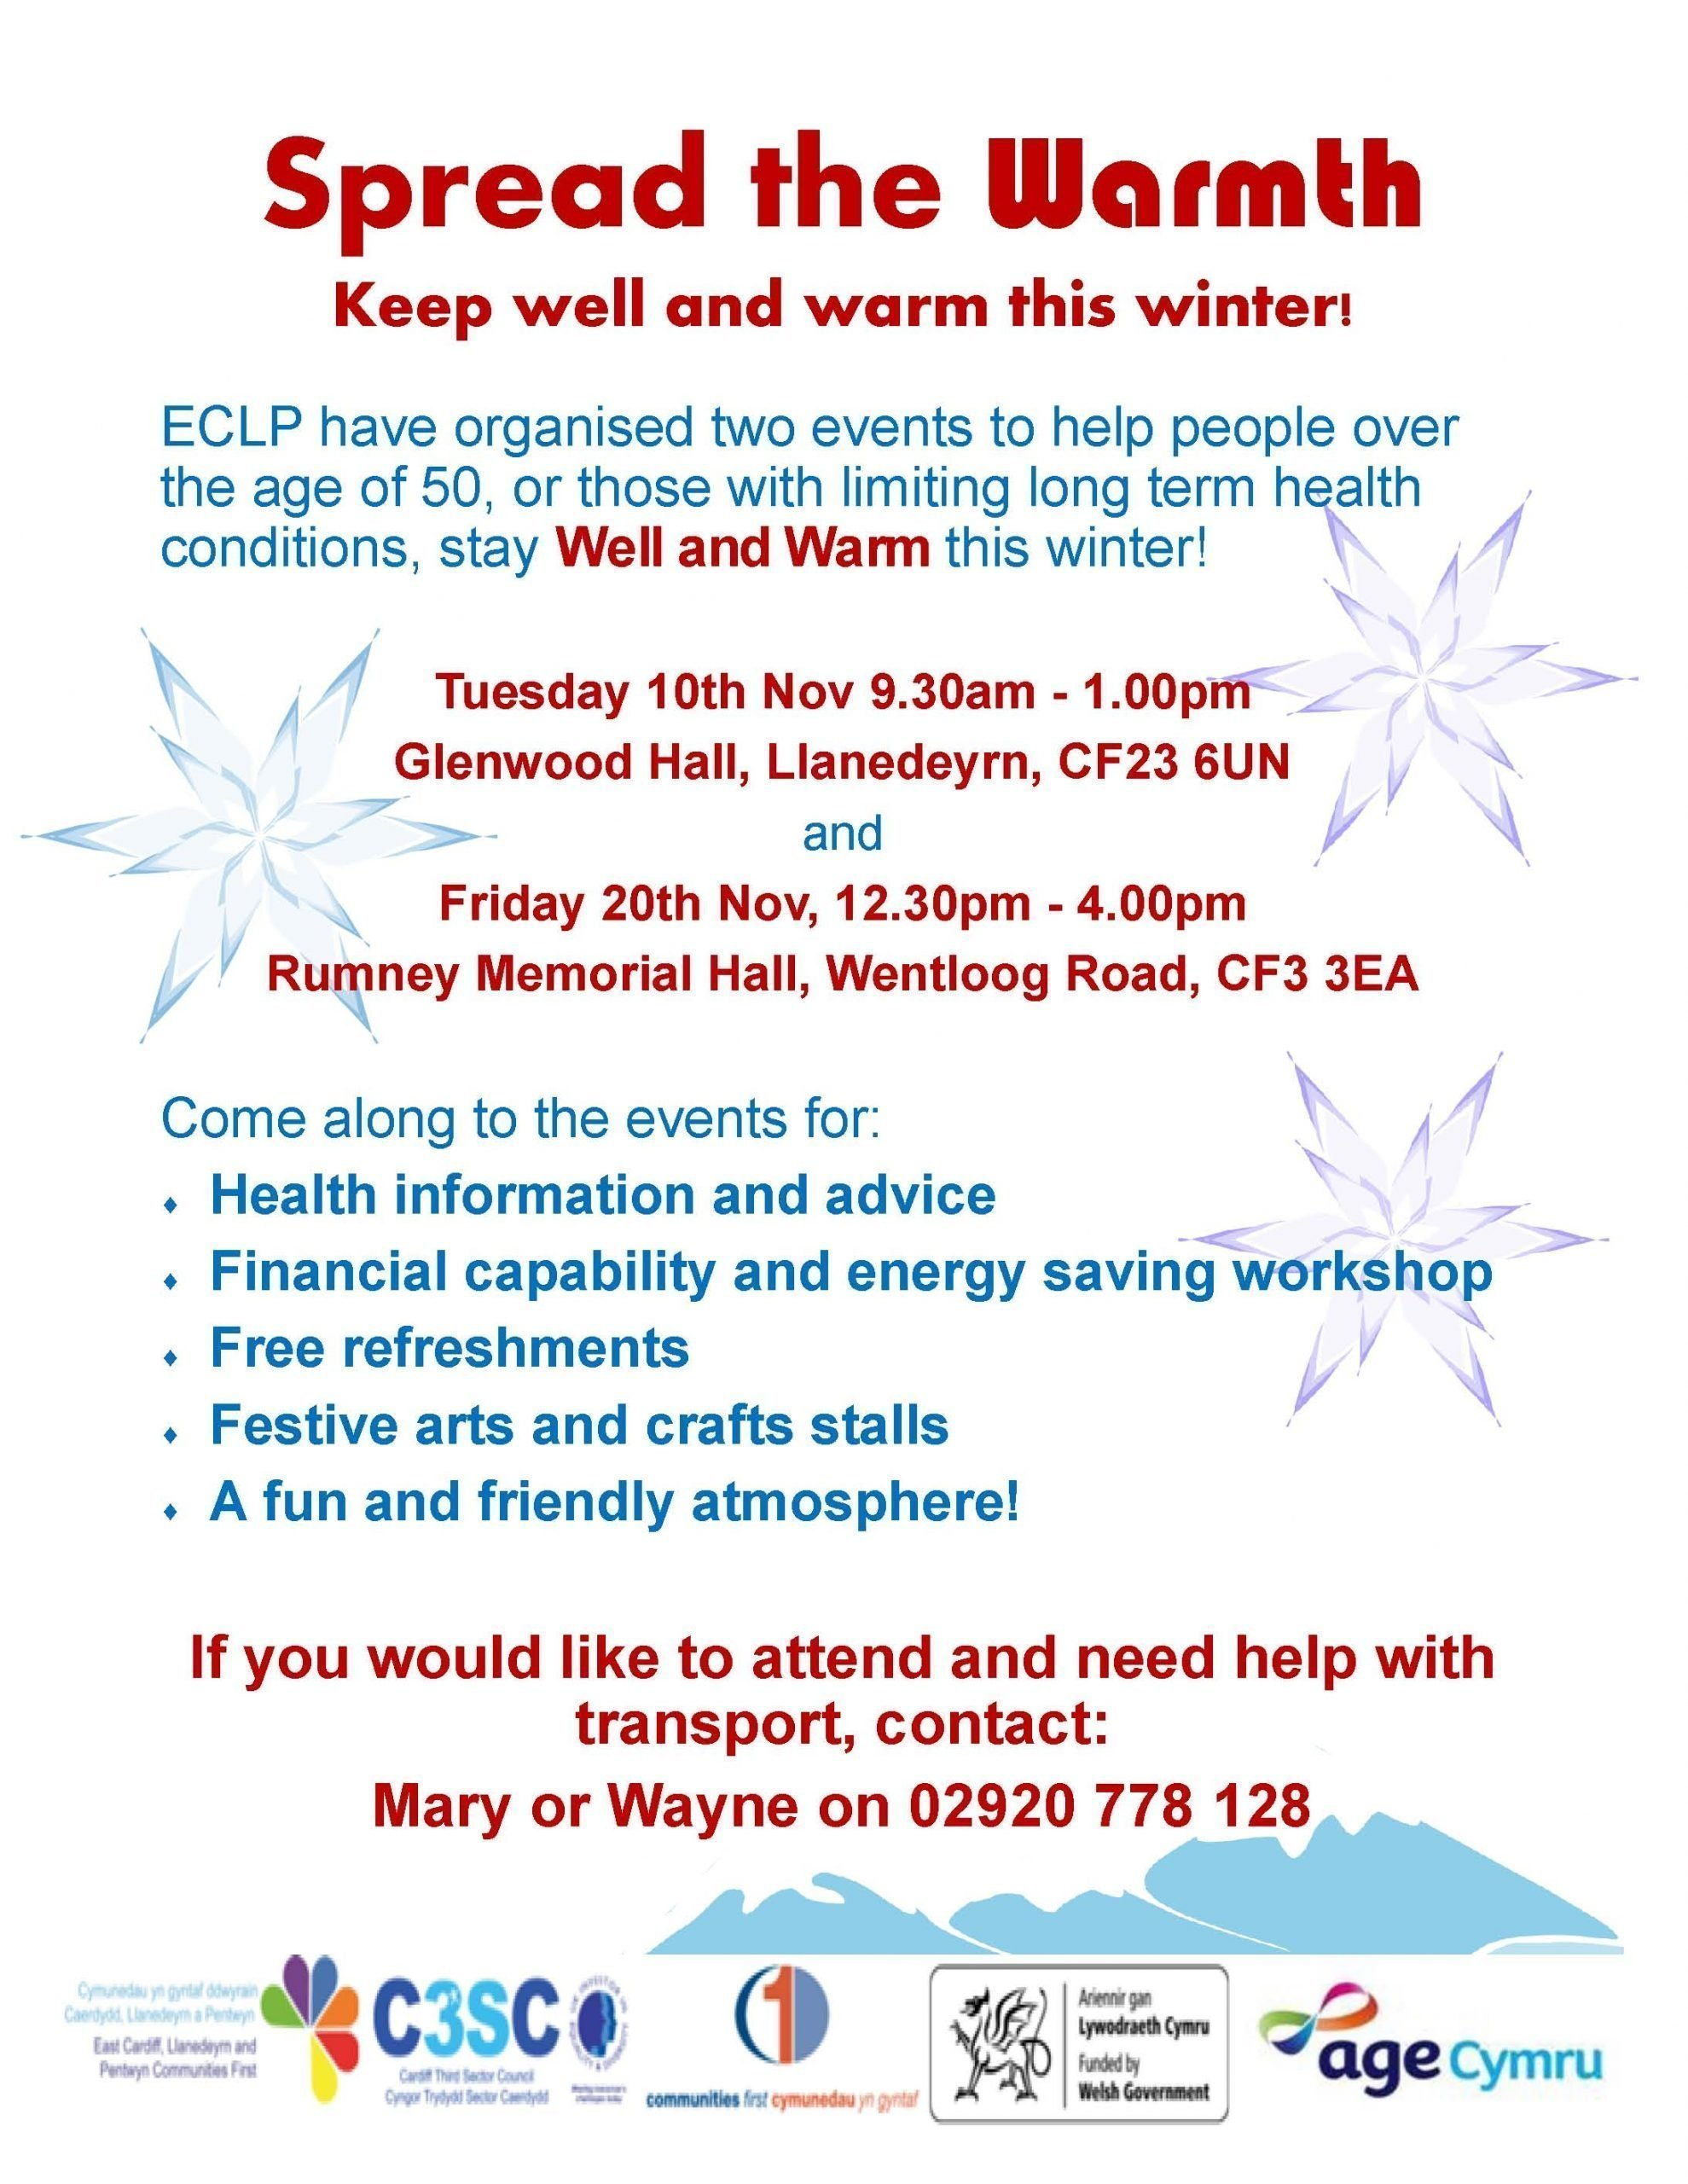 Spread the Warmth poster